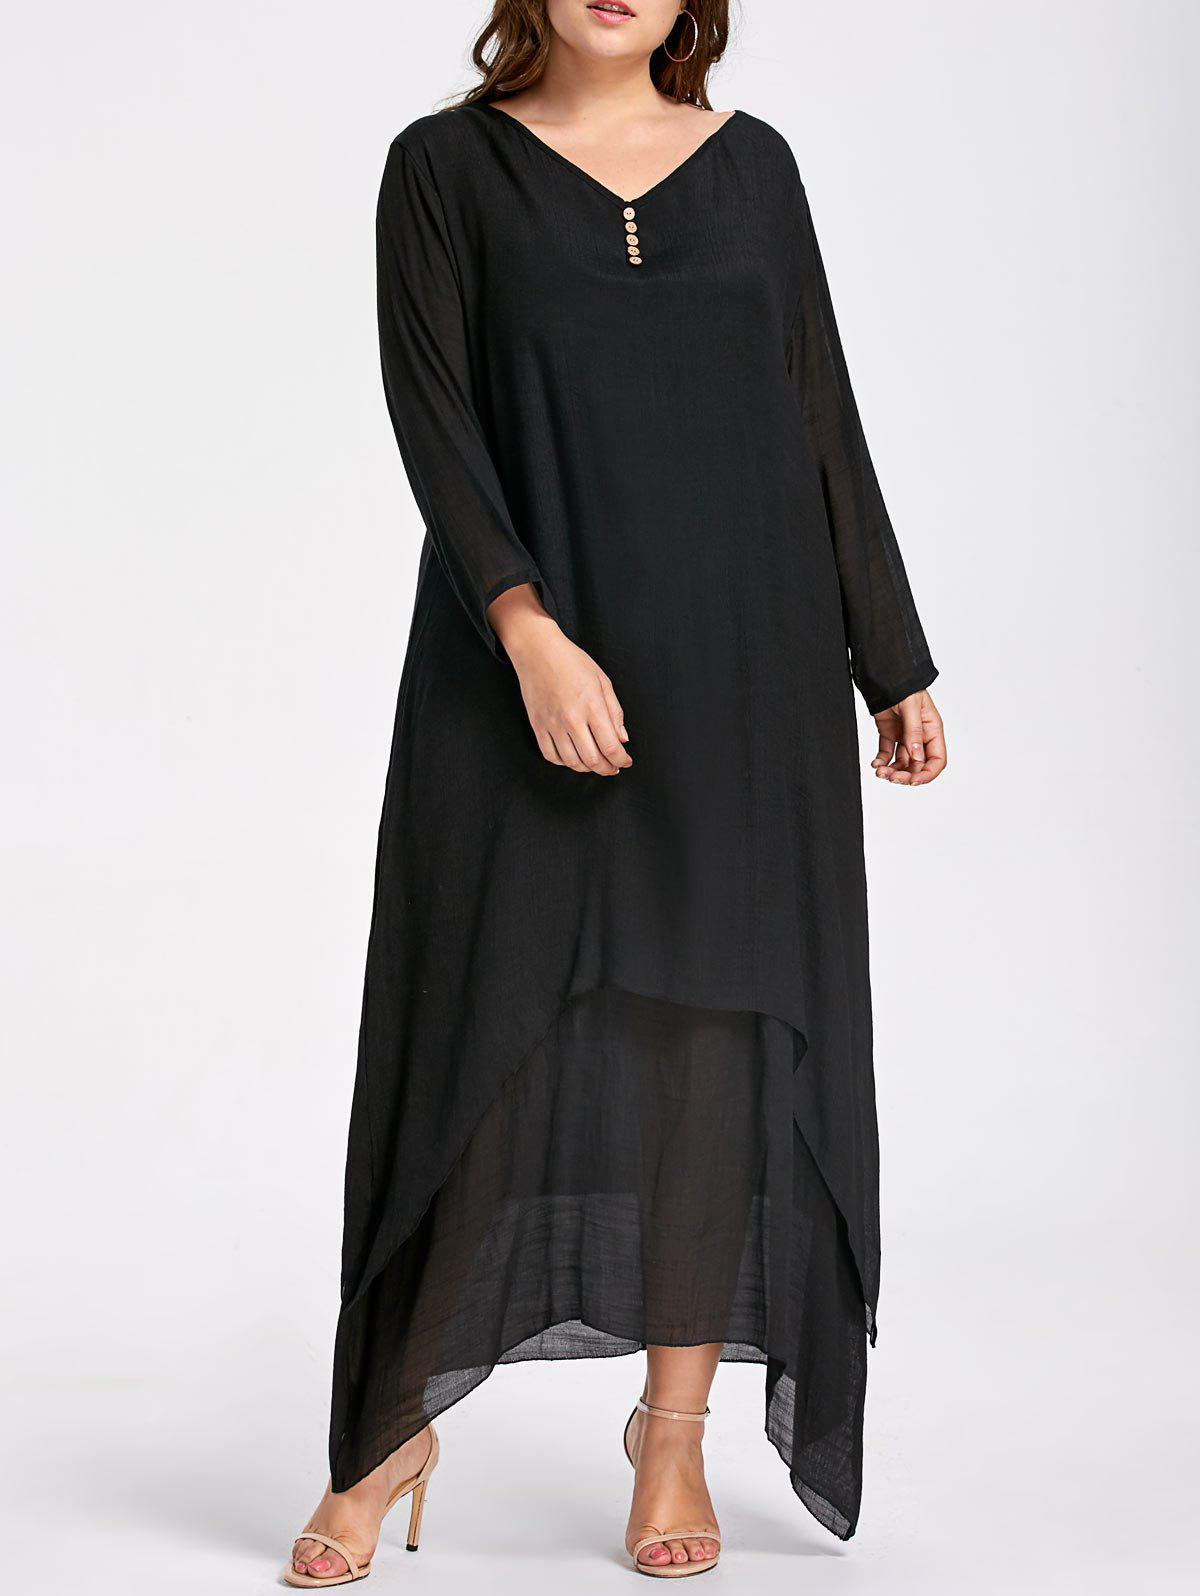 Plus Size Button Embellished Maxi Layered DressWOMEN<br><br>Size: 2XL; Color: BLACK; Style: Casual; Material: Cotton Blend,Linen,Polyester; Silhouette: Asymmetrical; Dresses Length: Ankle-Length; Neckline: V-Neck; Sleeve Length: Long Sleeves; Embellishment: Button,Ruffles; Pattern Type: Solid Color; With Belt: No; Season: Fall,Spring,Winter; Weight: 0.3800kg; Package Contents: 1 x Dress;